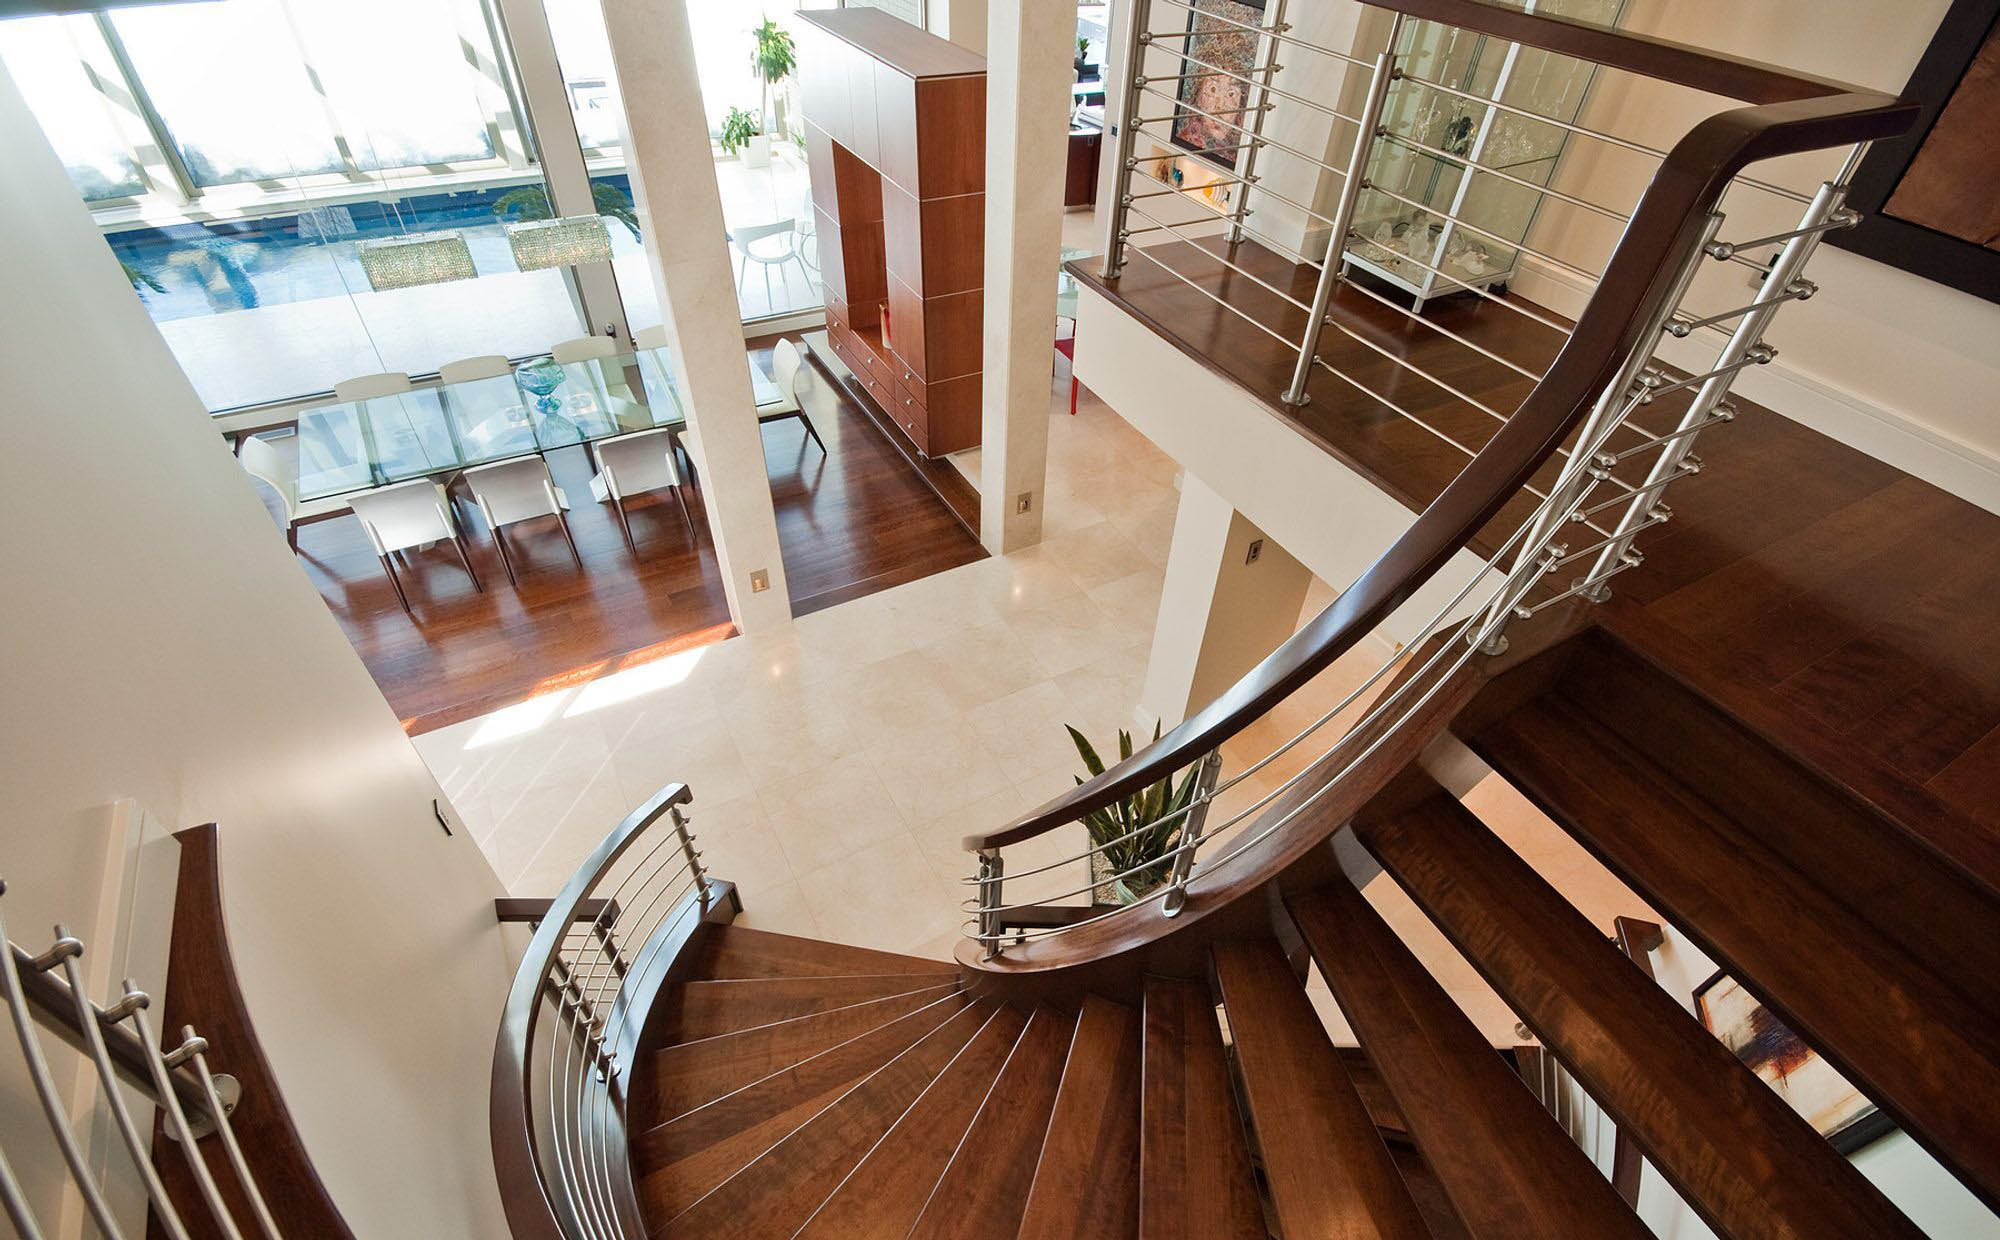 Beautiful curved wood modern staircase design with metal balusters and wood hard rail. Matching hardwood floors. Dark brown stain with a light sheen.